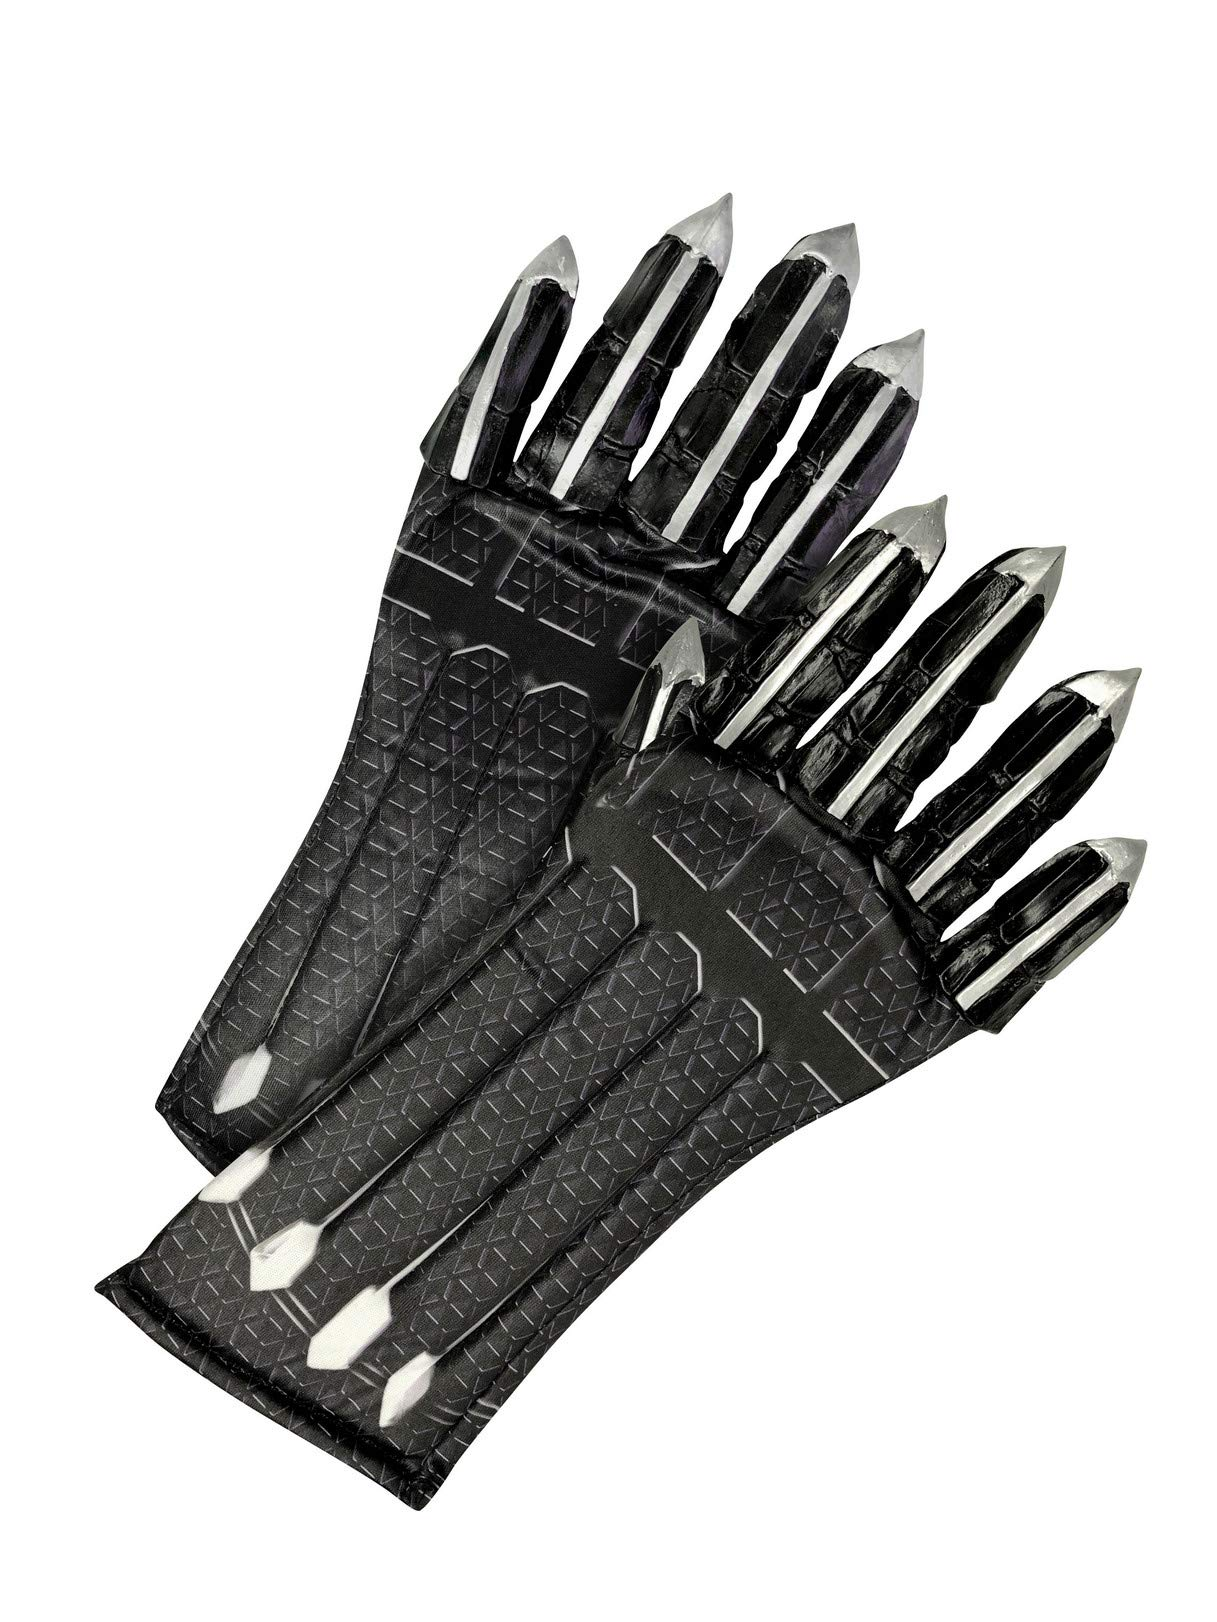 Rubie's Boys Black Panther Gloves Costume Accessory, As Shown, One Size